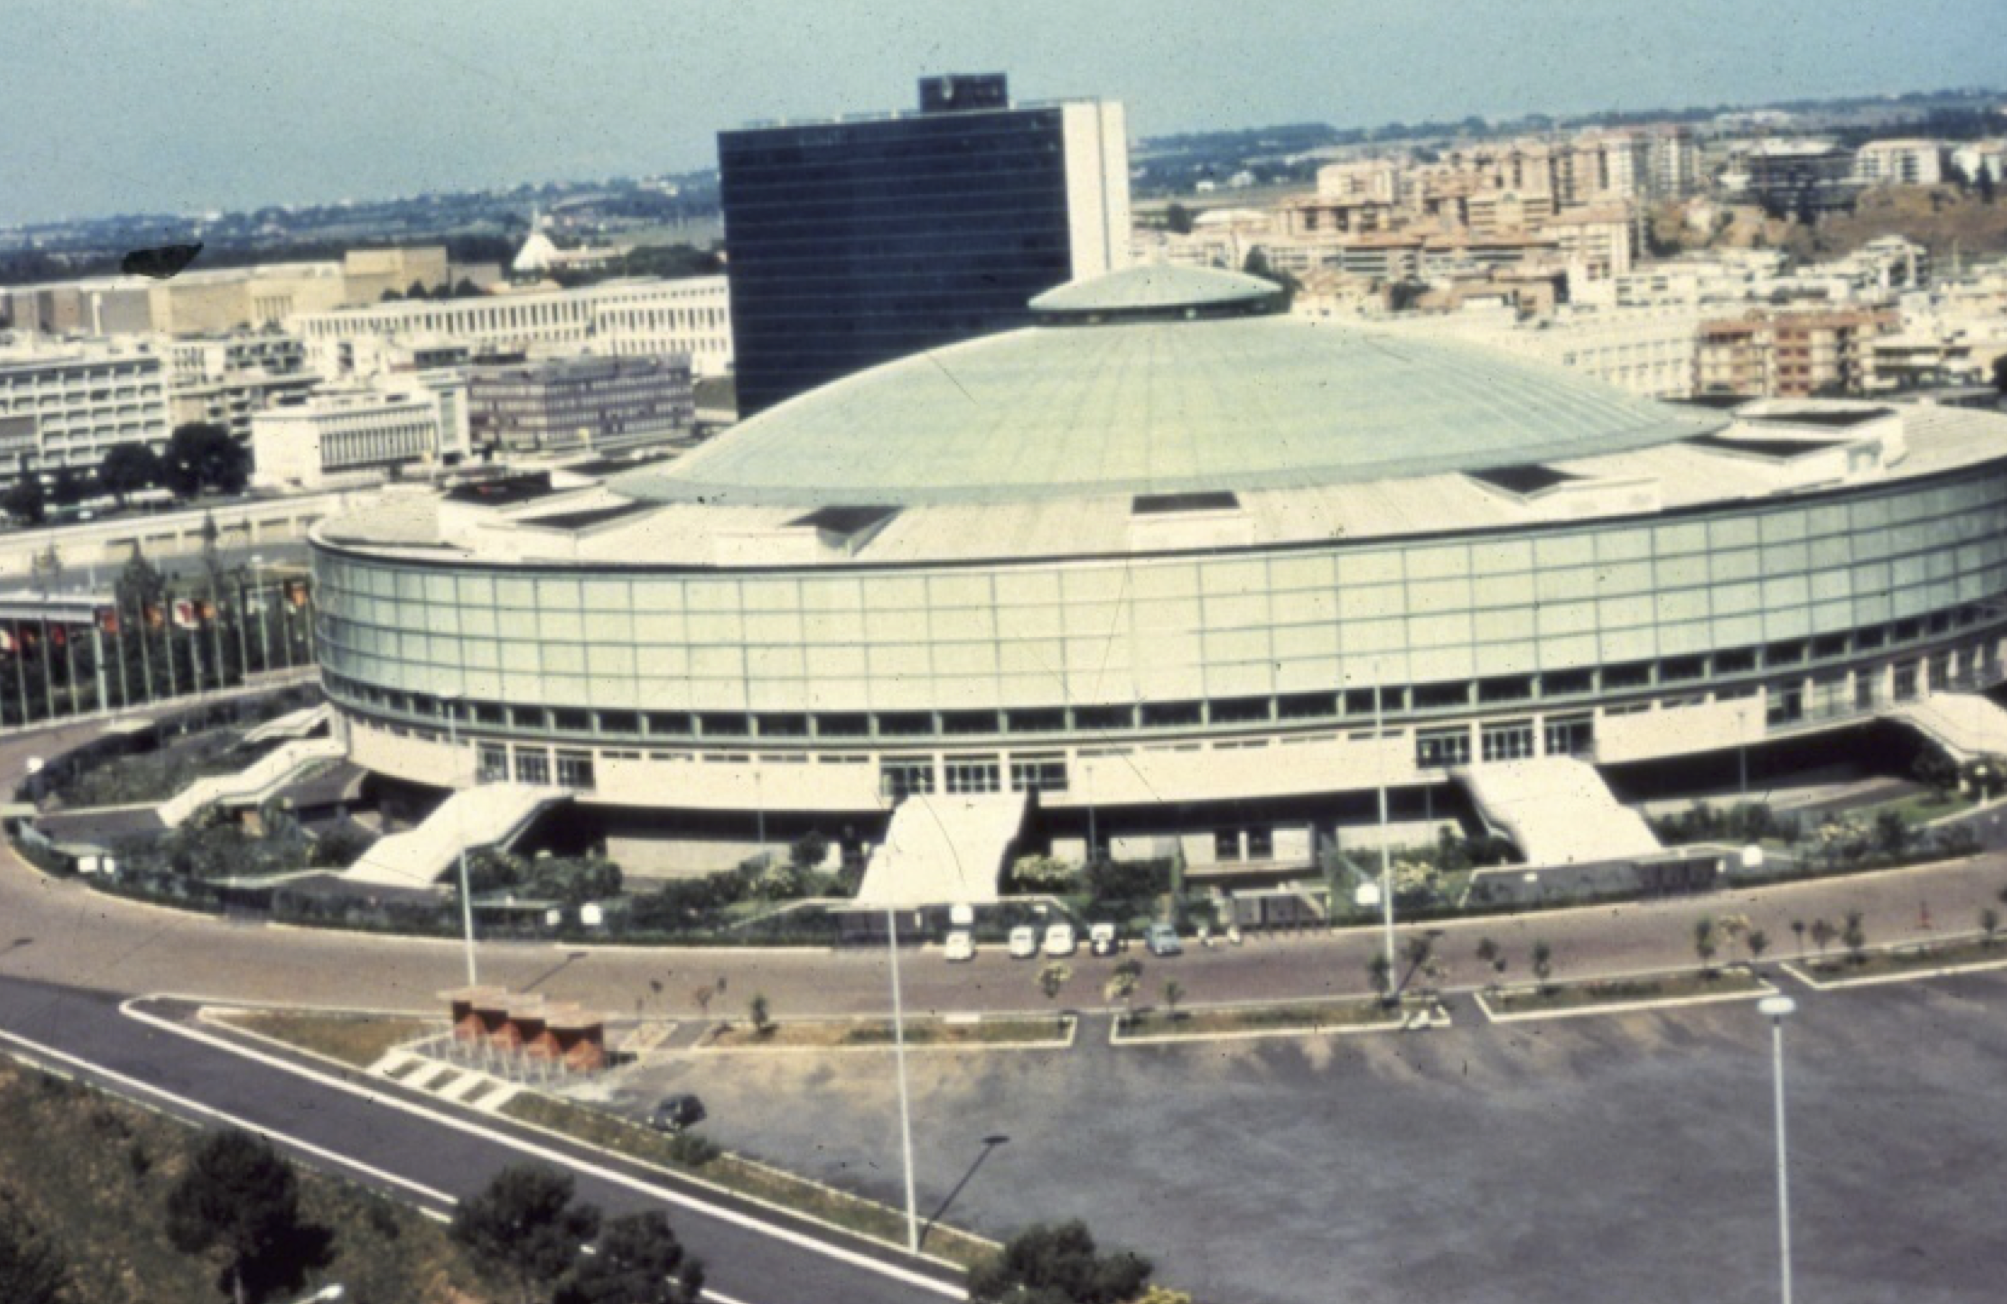 The Large Sports Palace